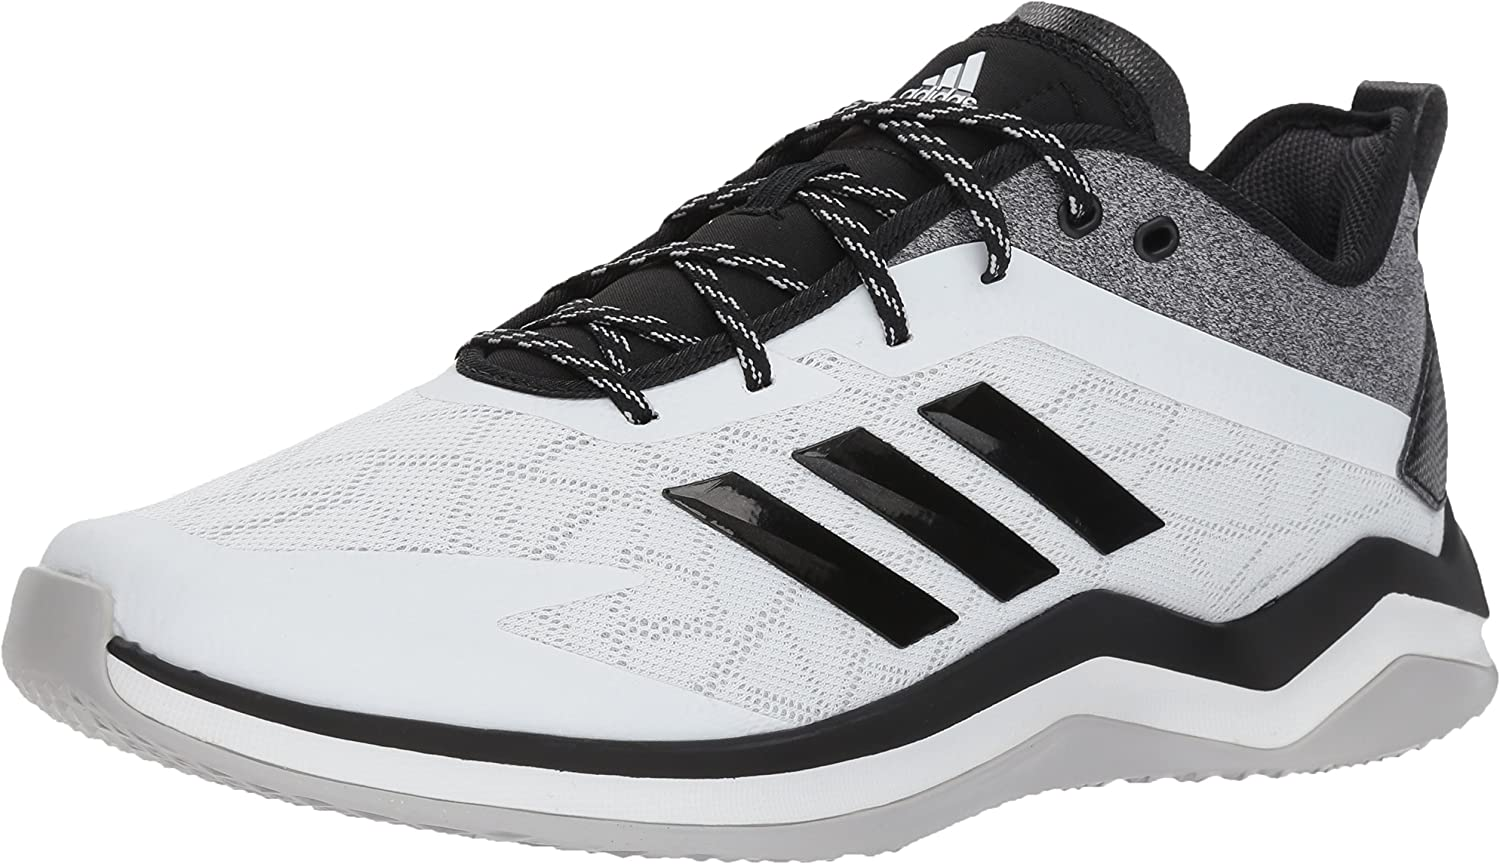 adidas Originals Men s Speed Trainer 4 Baseball Shoe